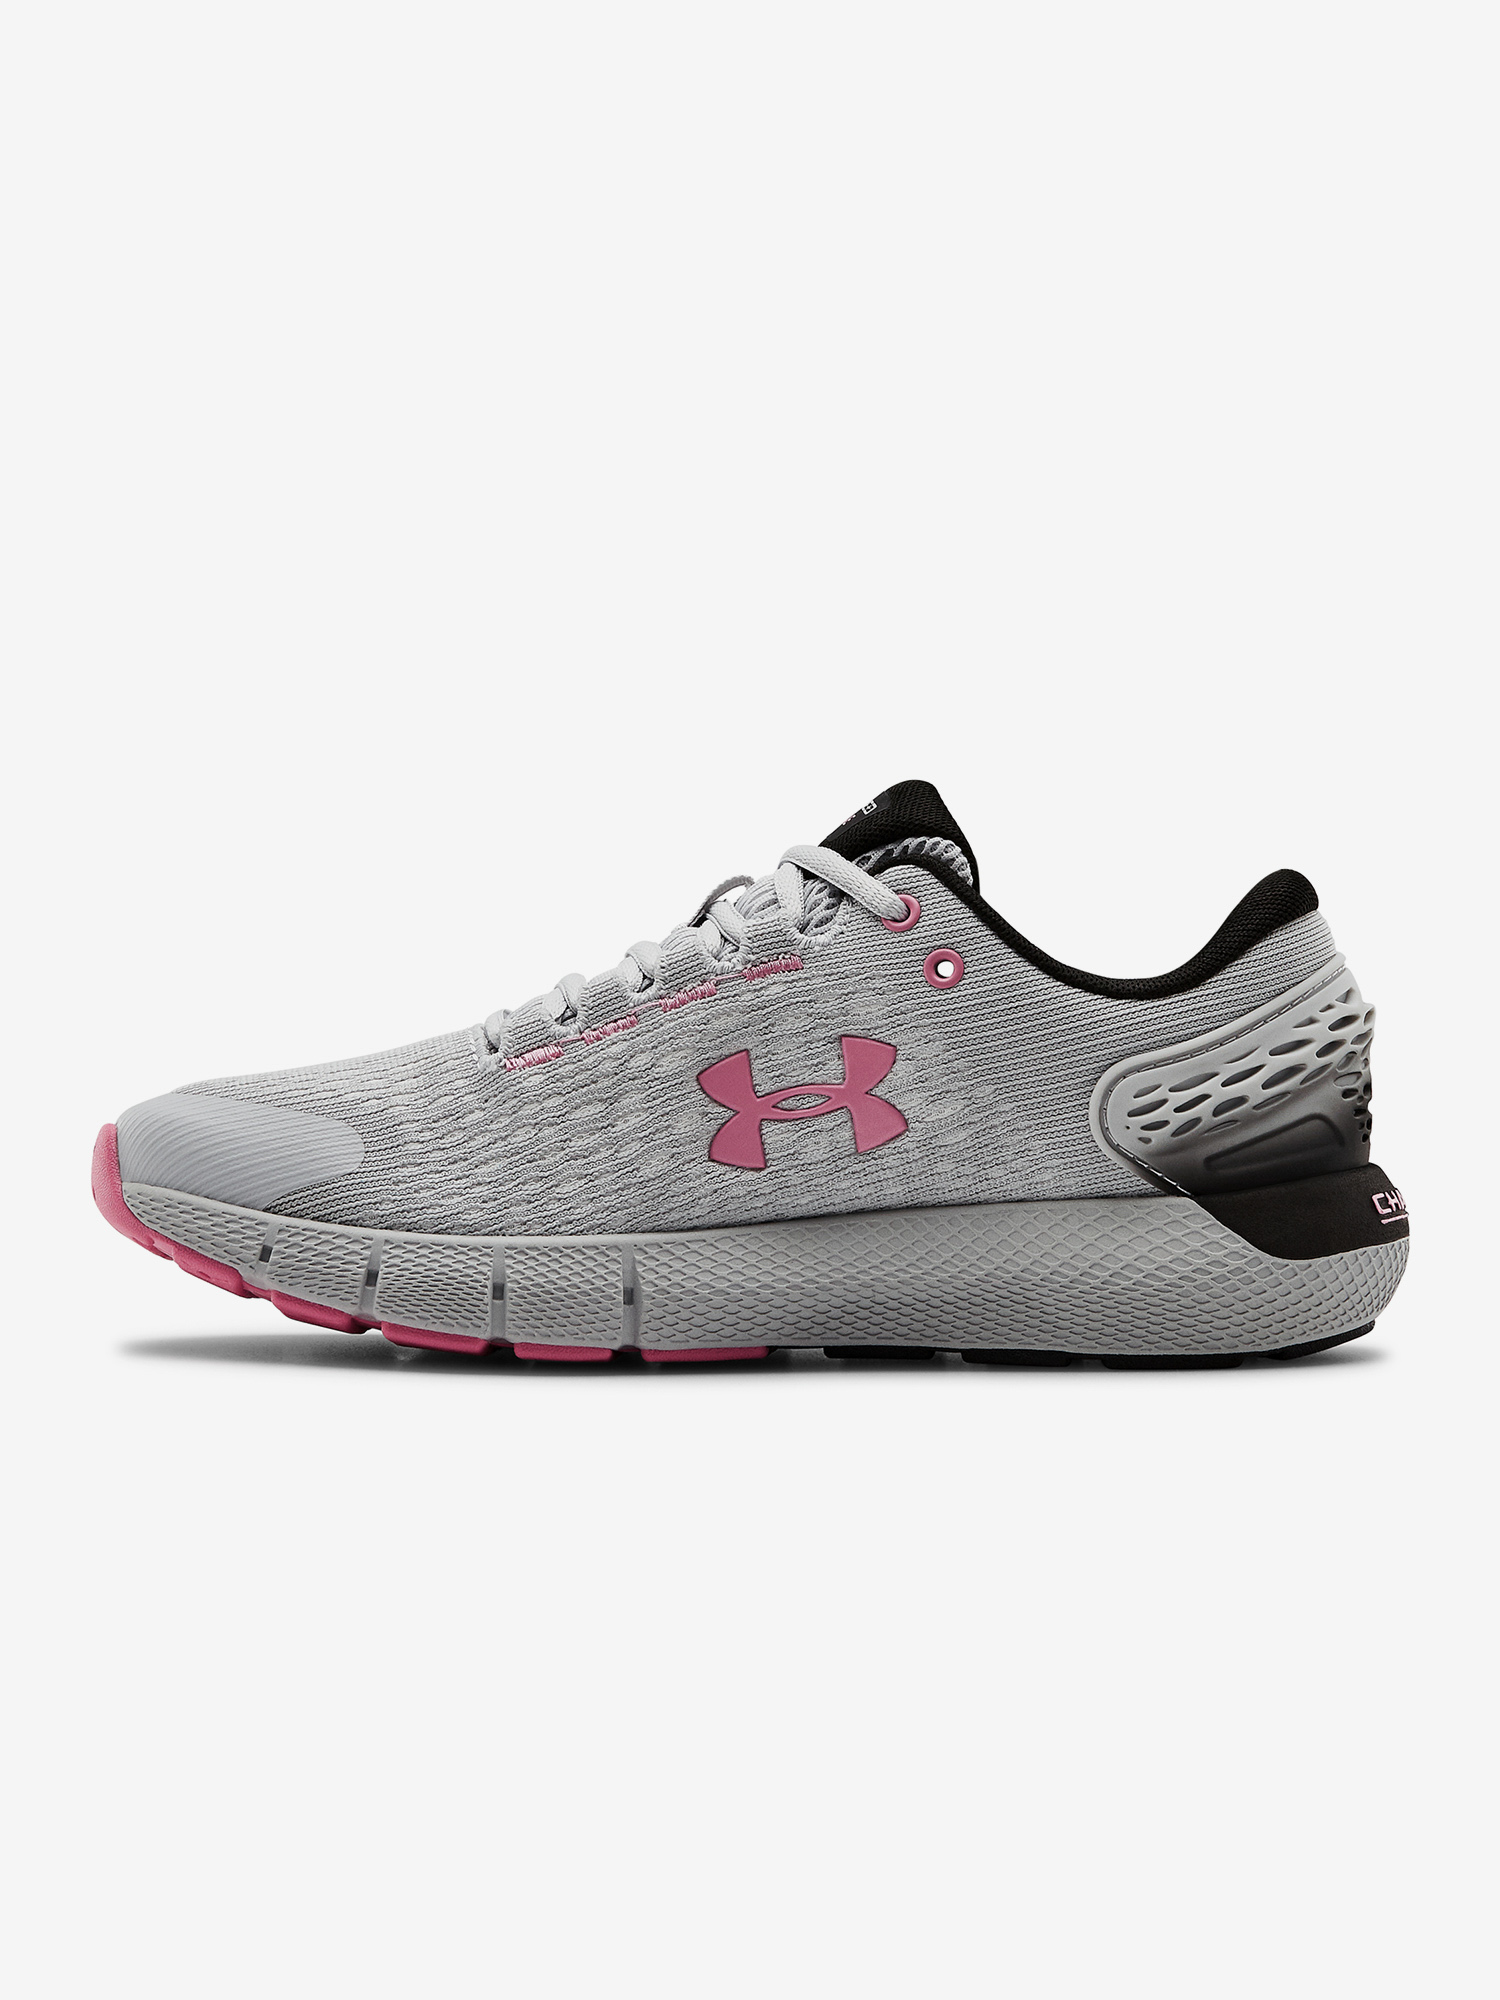 Boty Under Armour W Charged Rogue 2 (2)